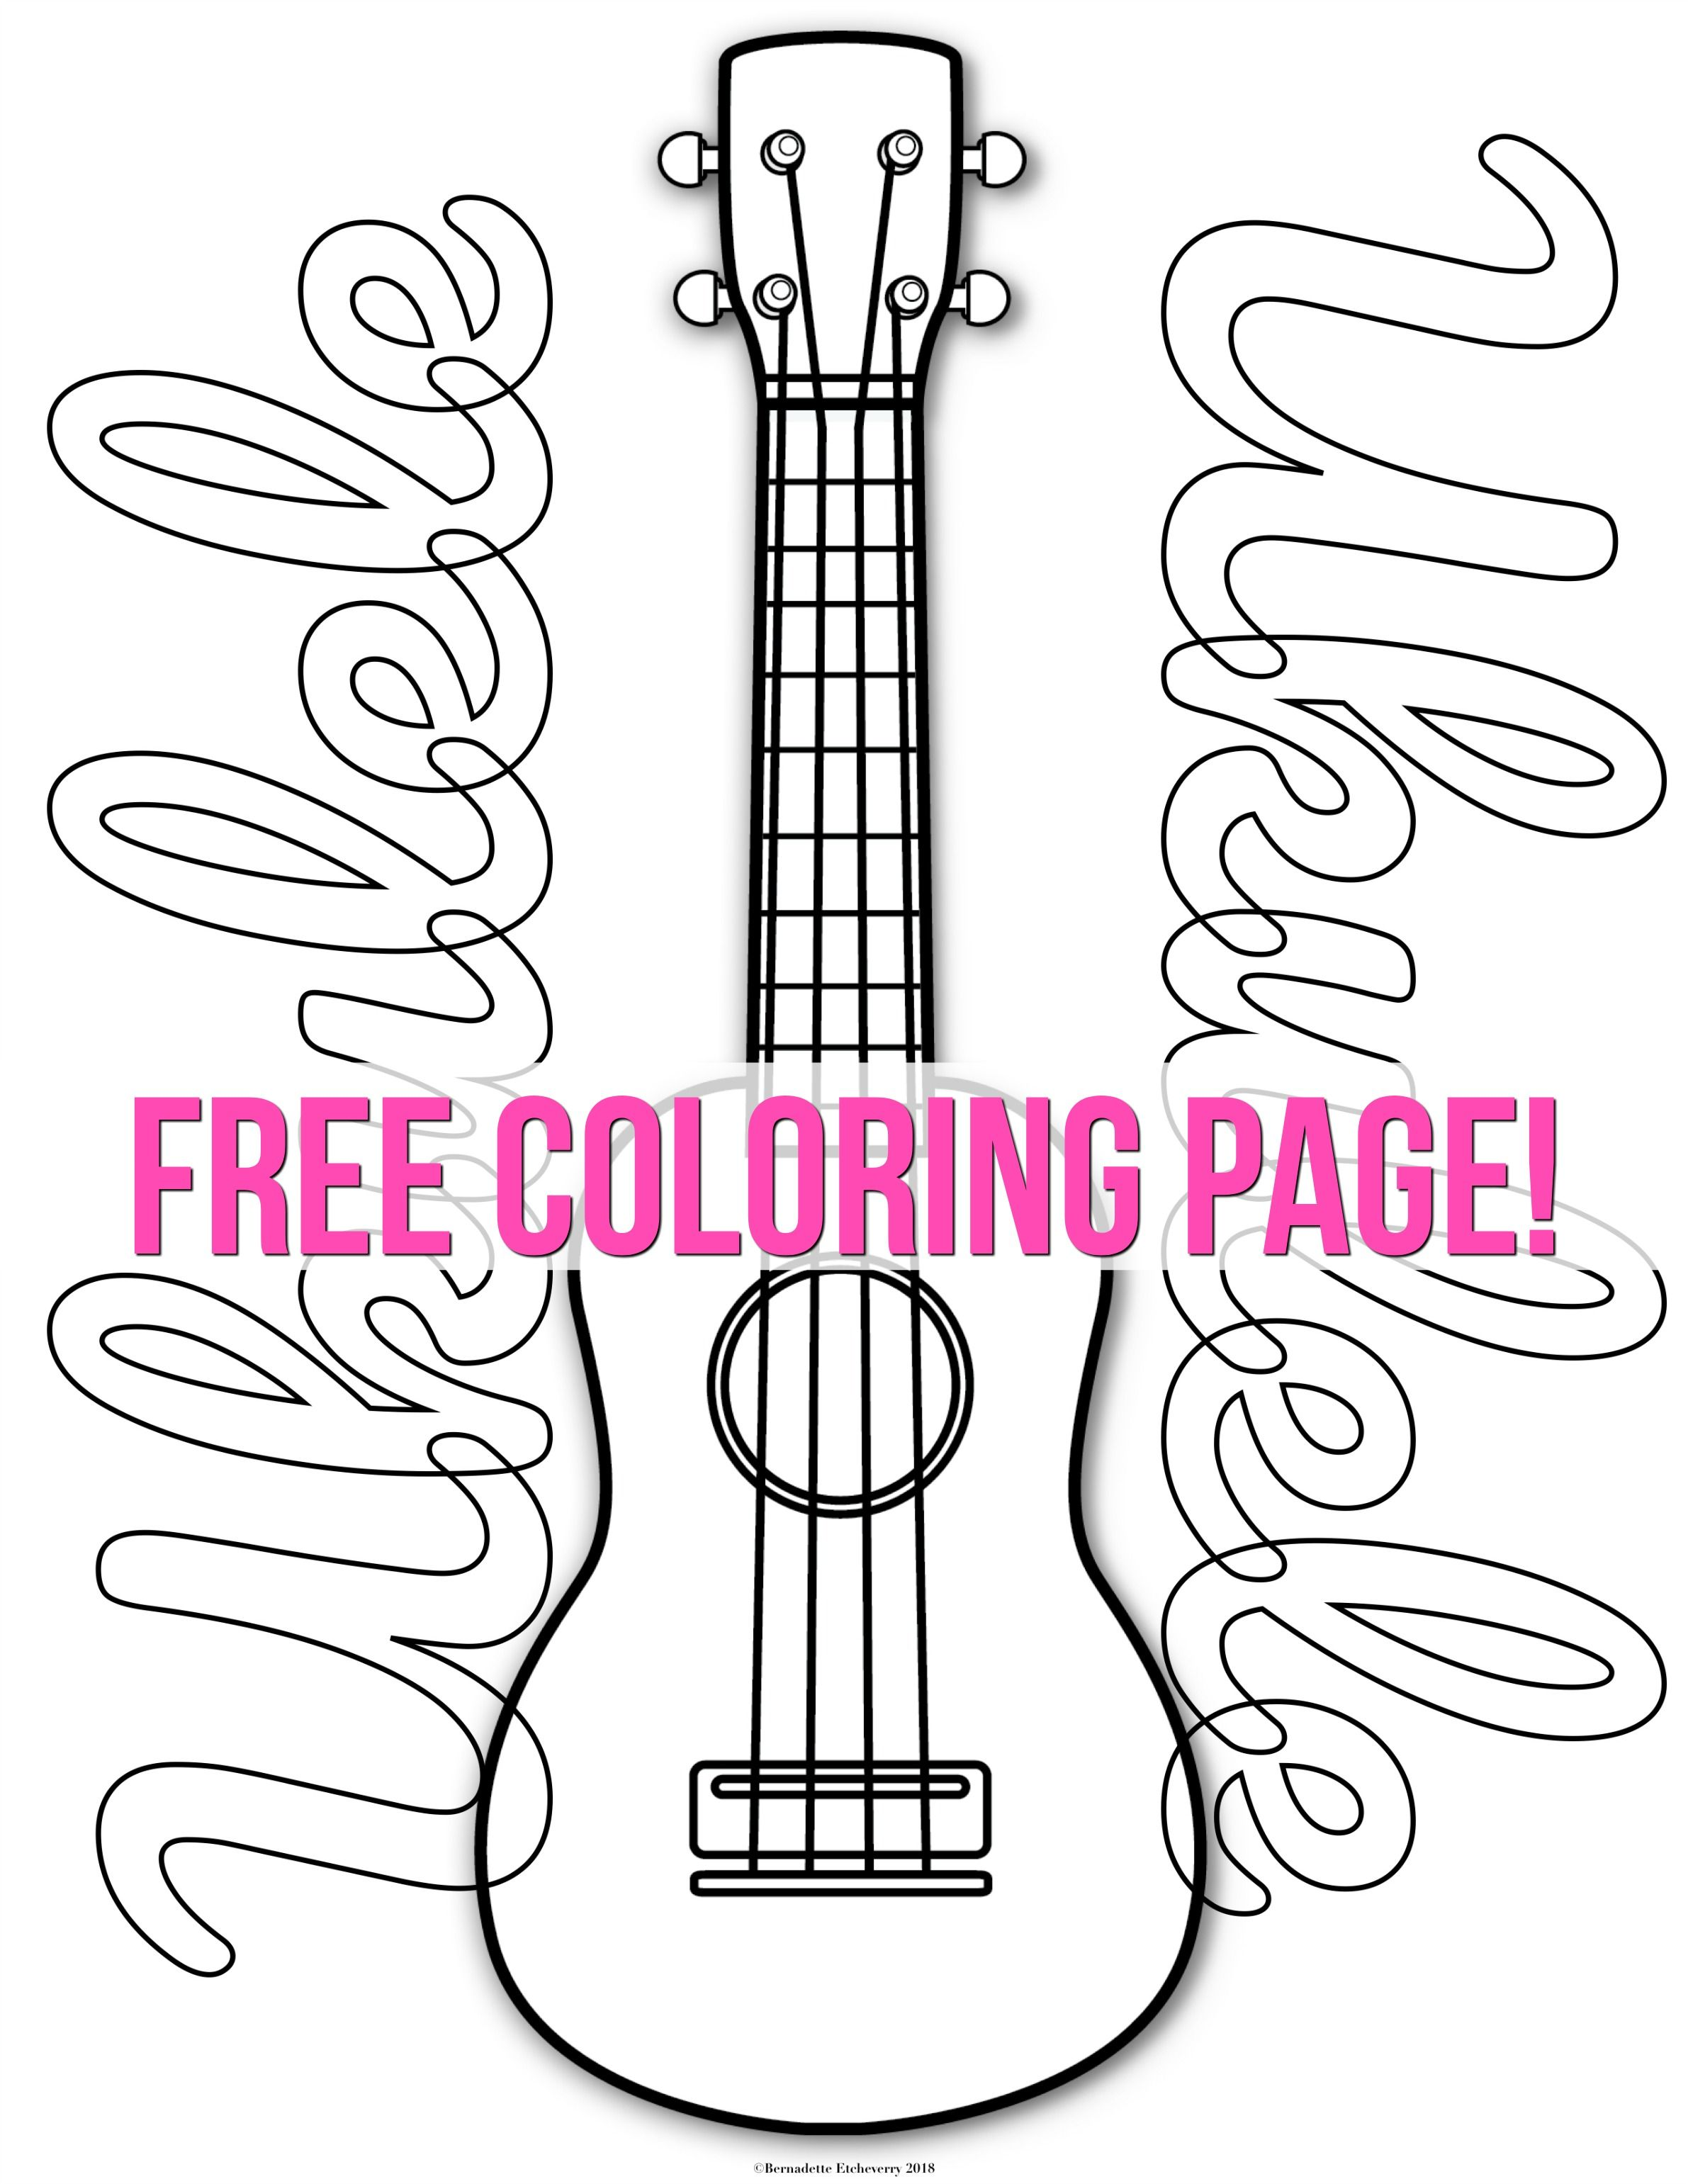 Host an Ukulele Coloring Exhibition or Competition! From time to ...